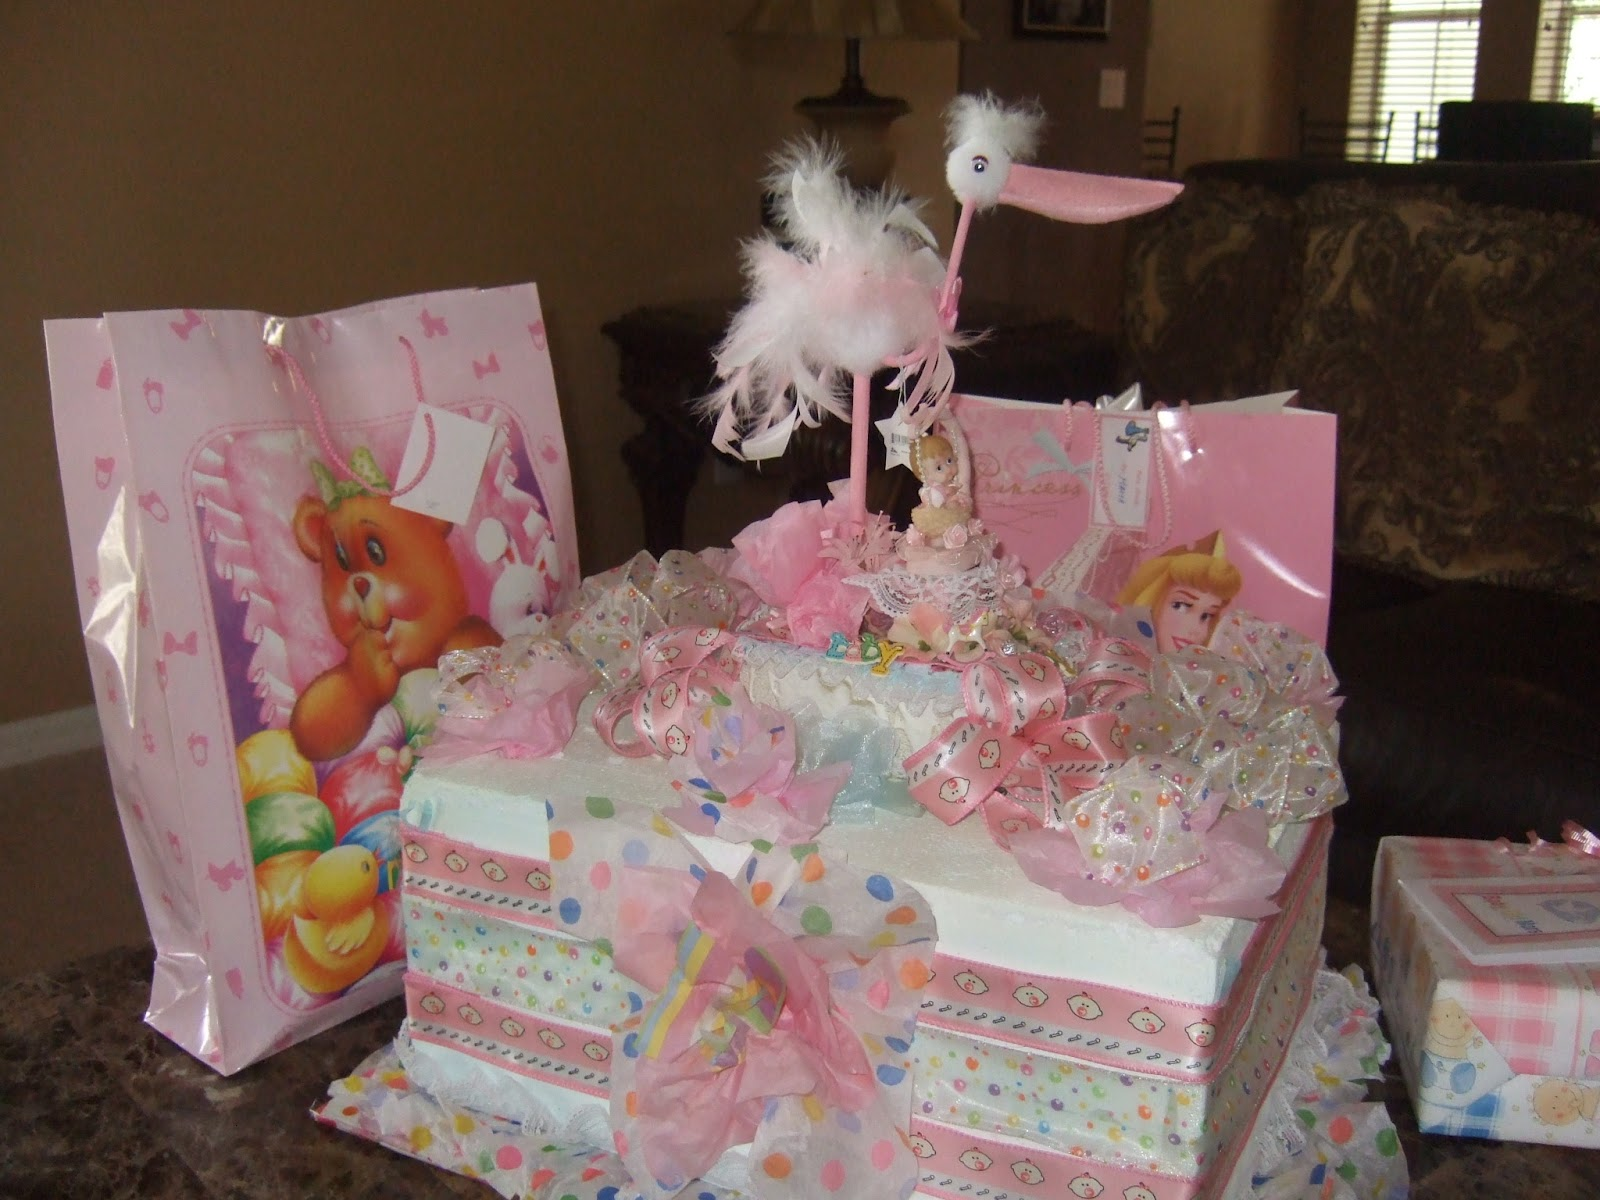 here are some photos of the baby shower decorations ...